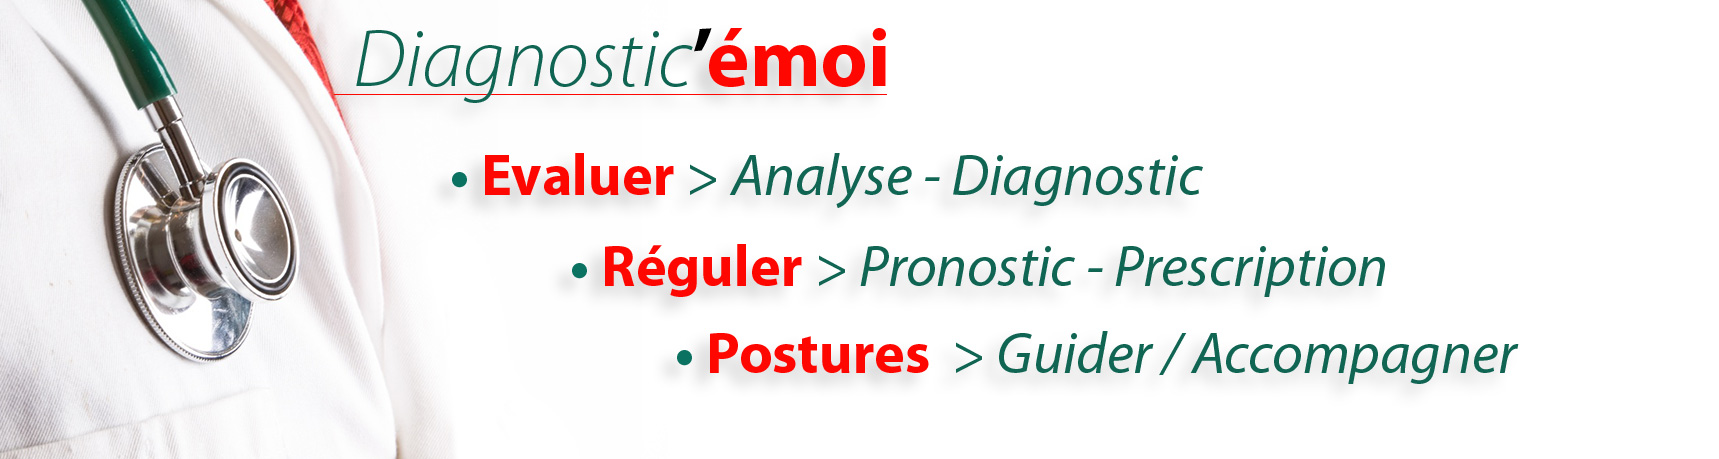 • Diagnostic'émoi… Evaluation (Analyse & Diagnostic) & Régulation (Pronostic & Prescription)